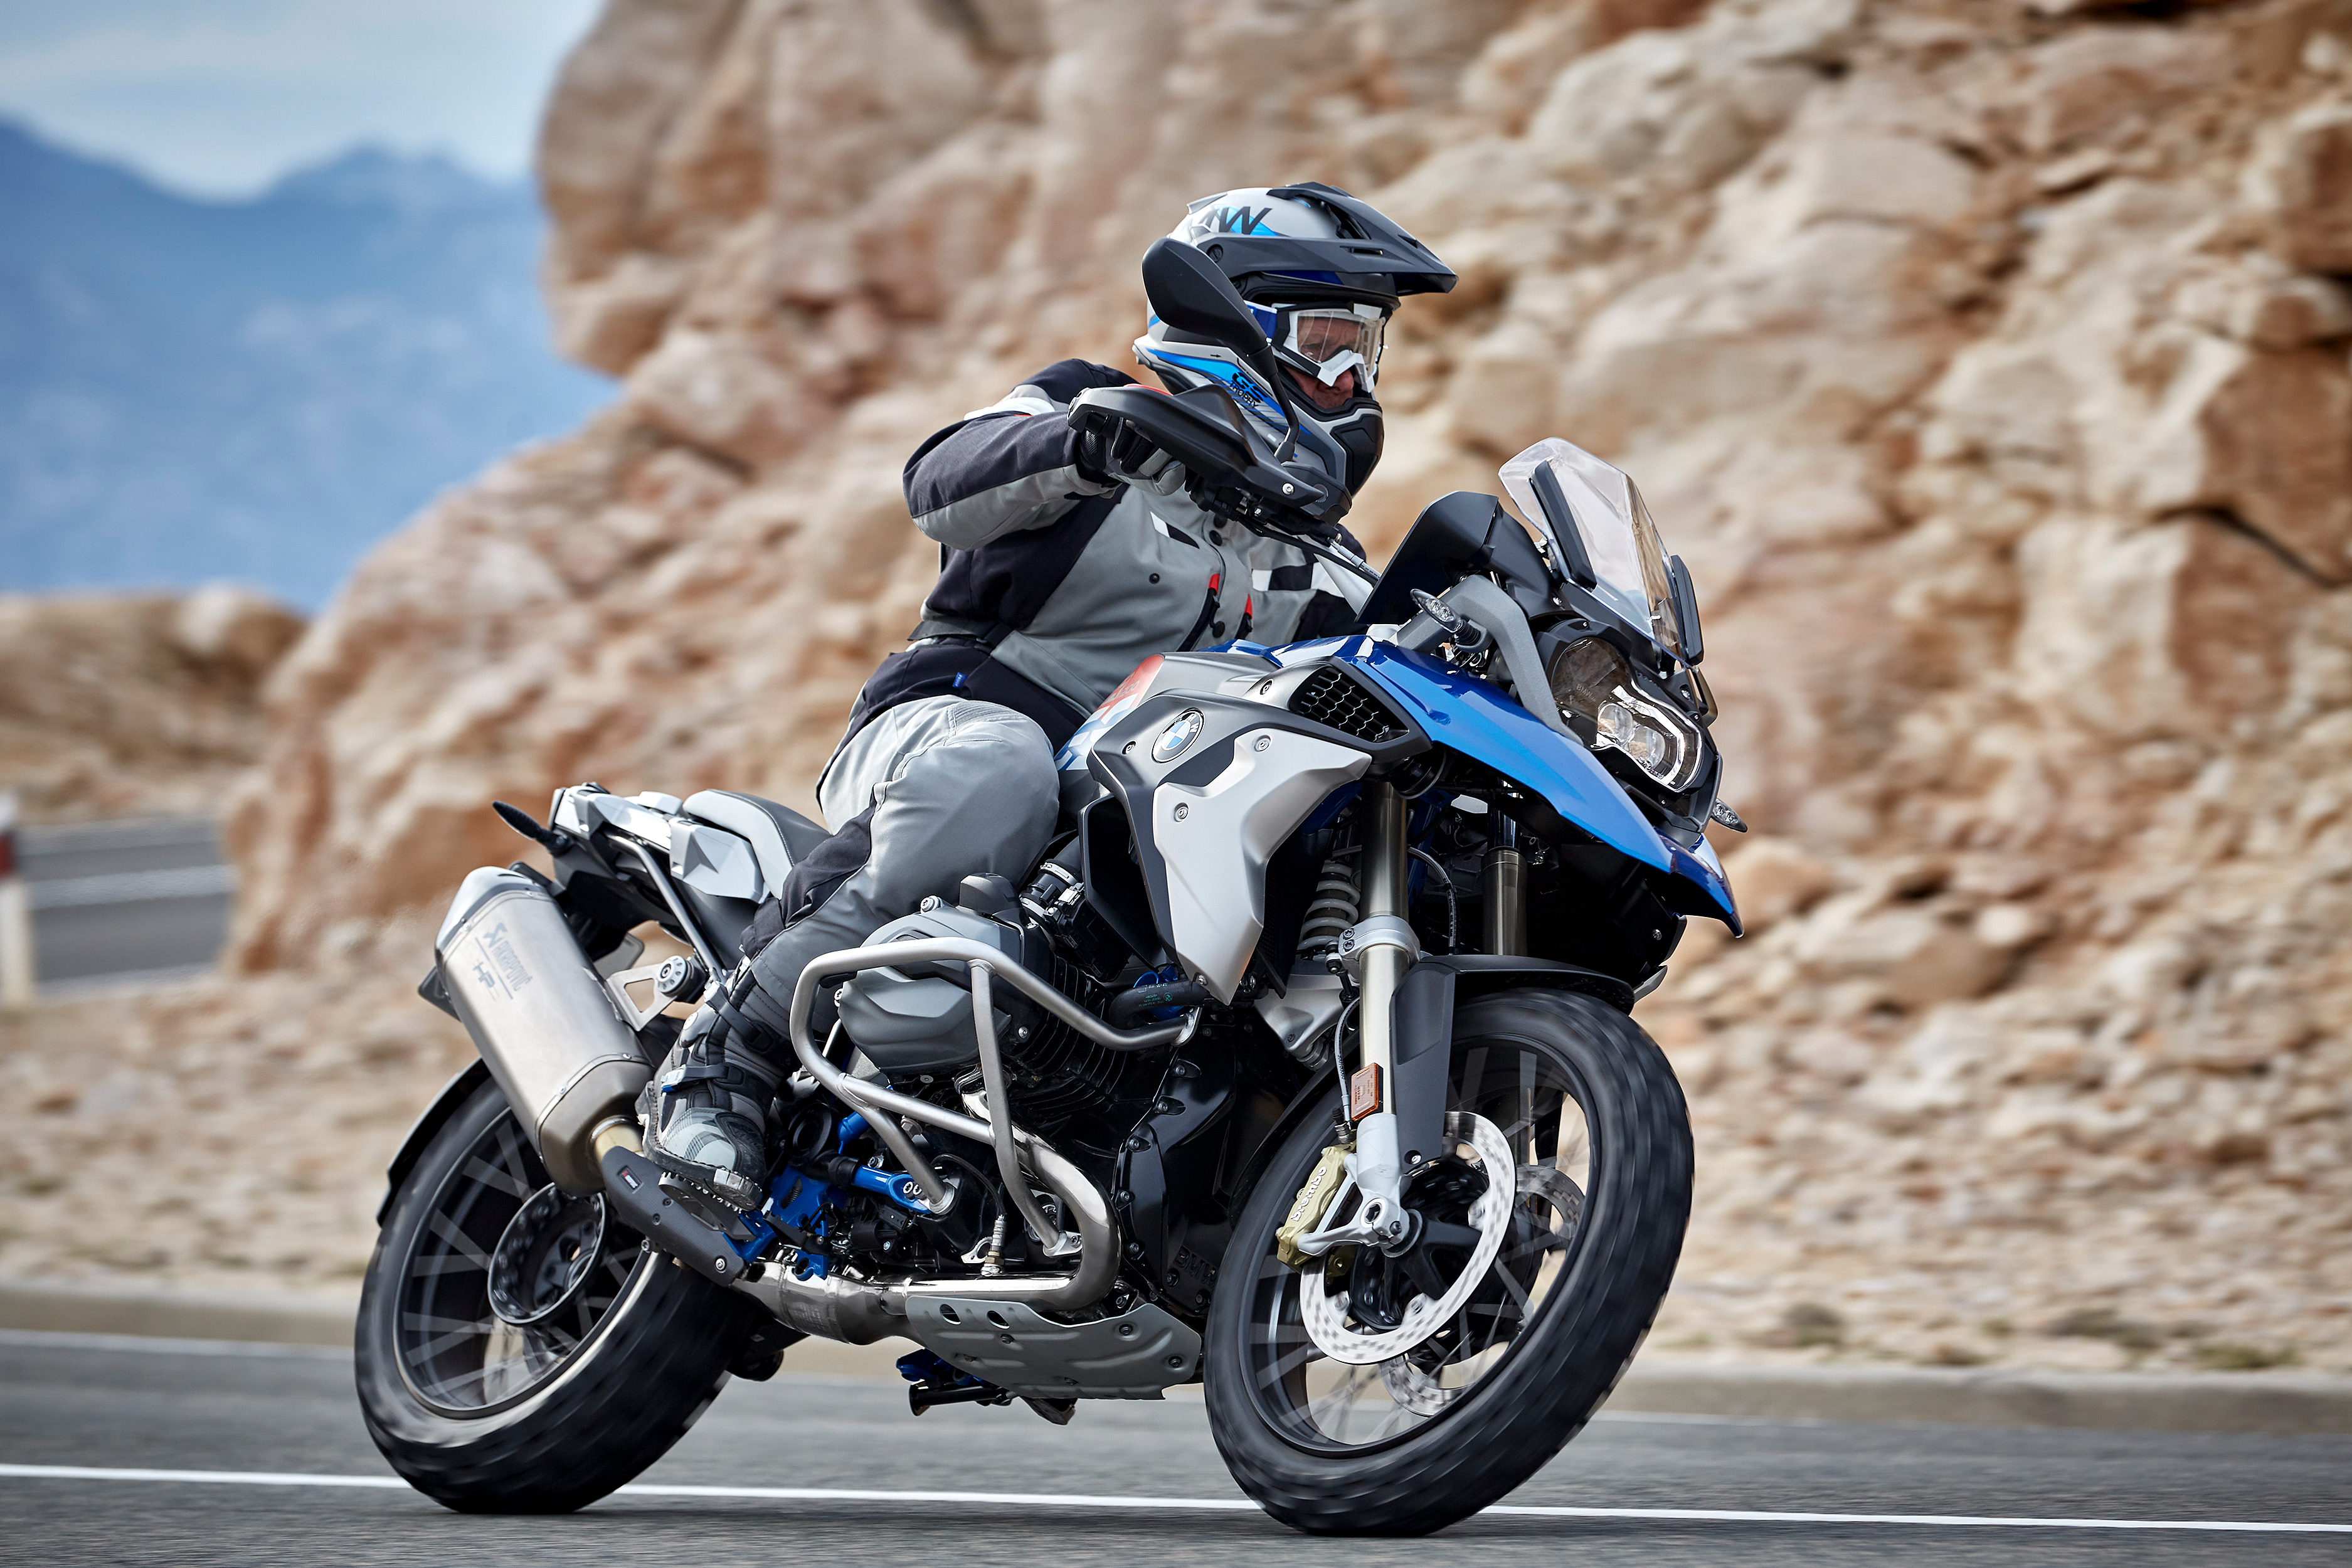 2017 bmw motorrad r1200 gs all new for 2017 with rallye and exclusive packages euro 4 ready. Black Bedroom Furniture Sets. Home Design Ideas